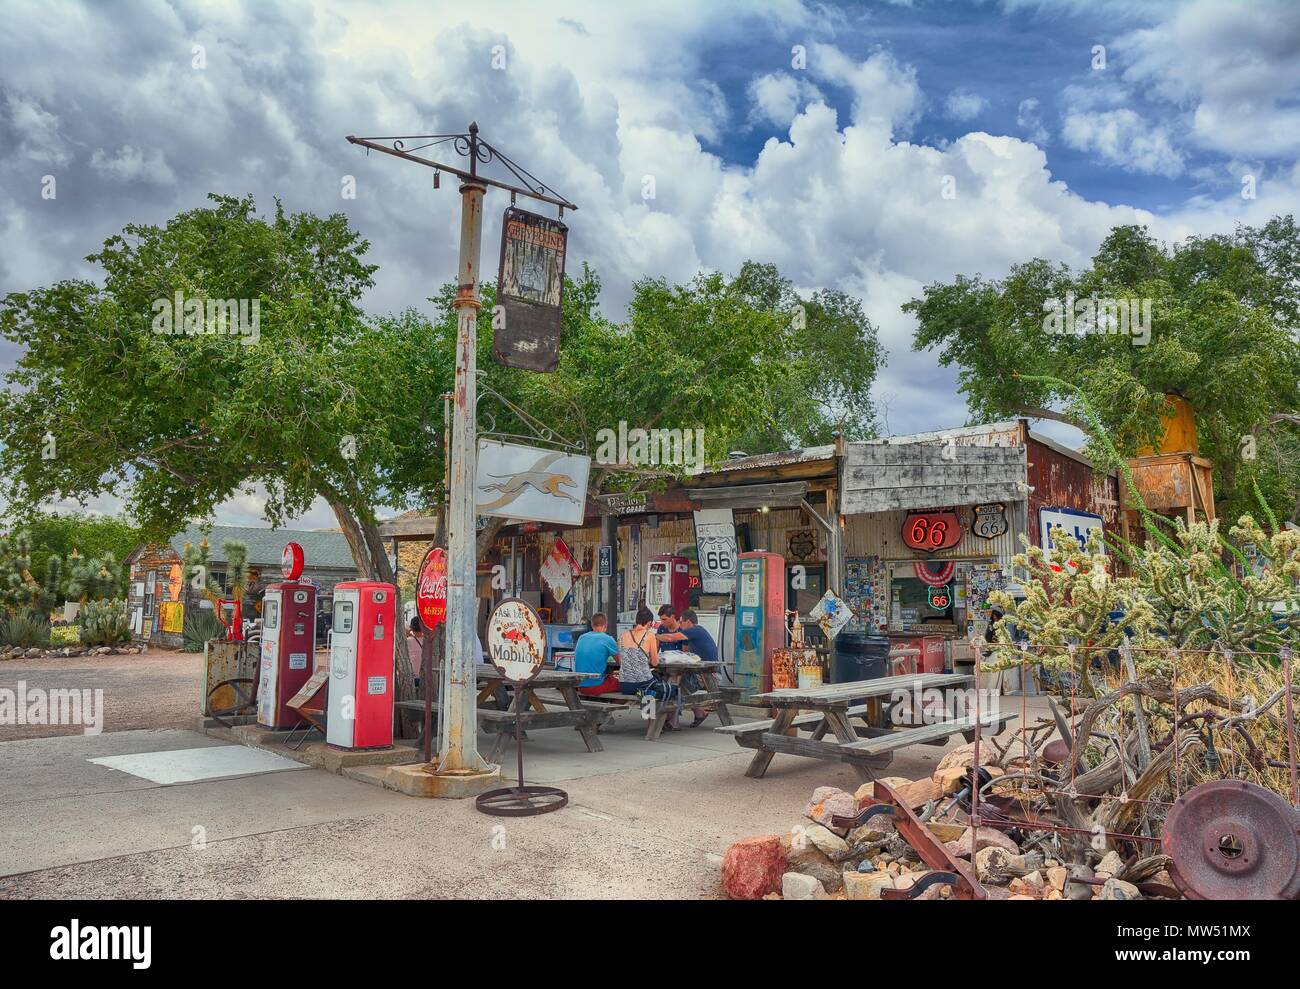 hackberry, arizona, usa - july 24, 2017: the famous historic route